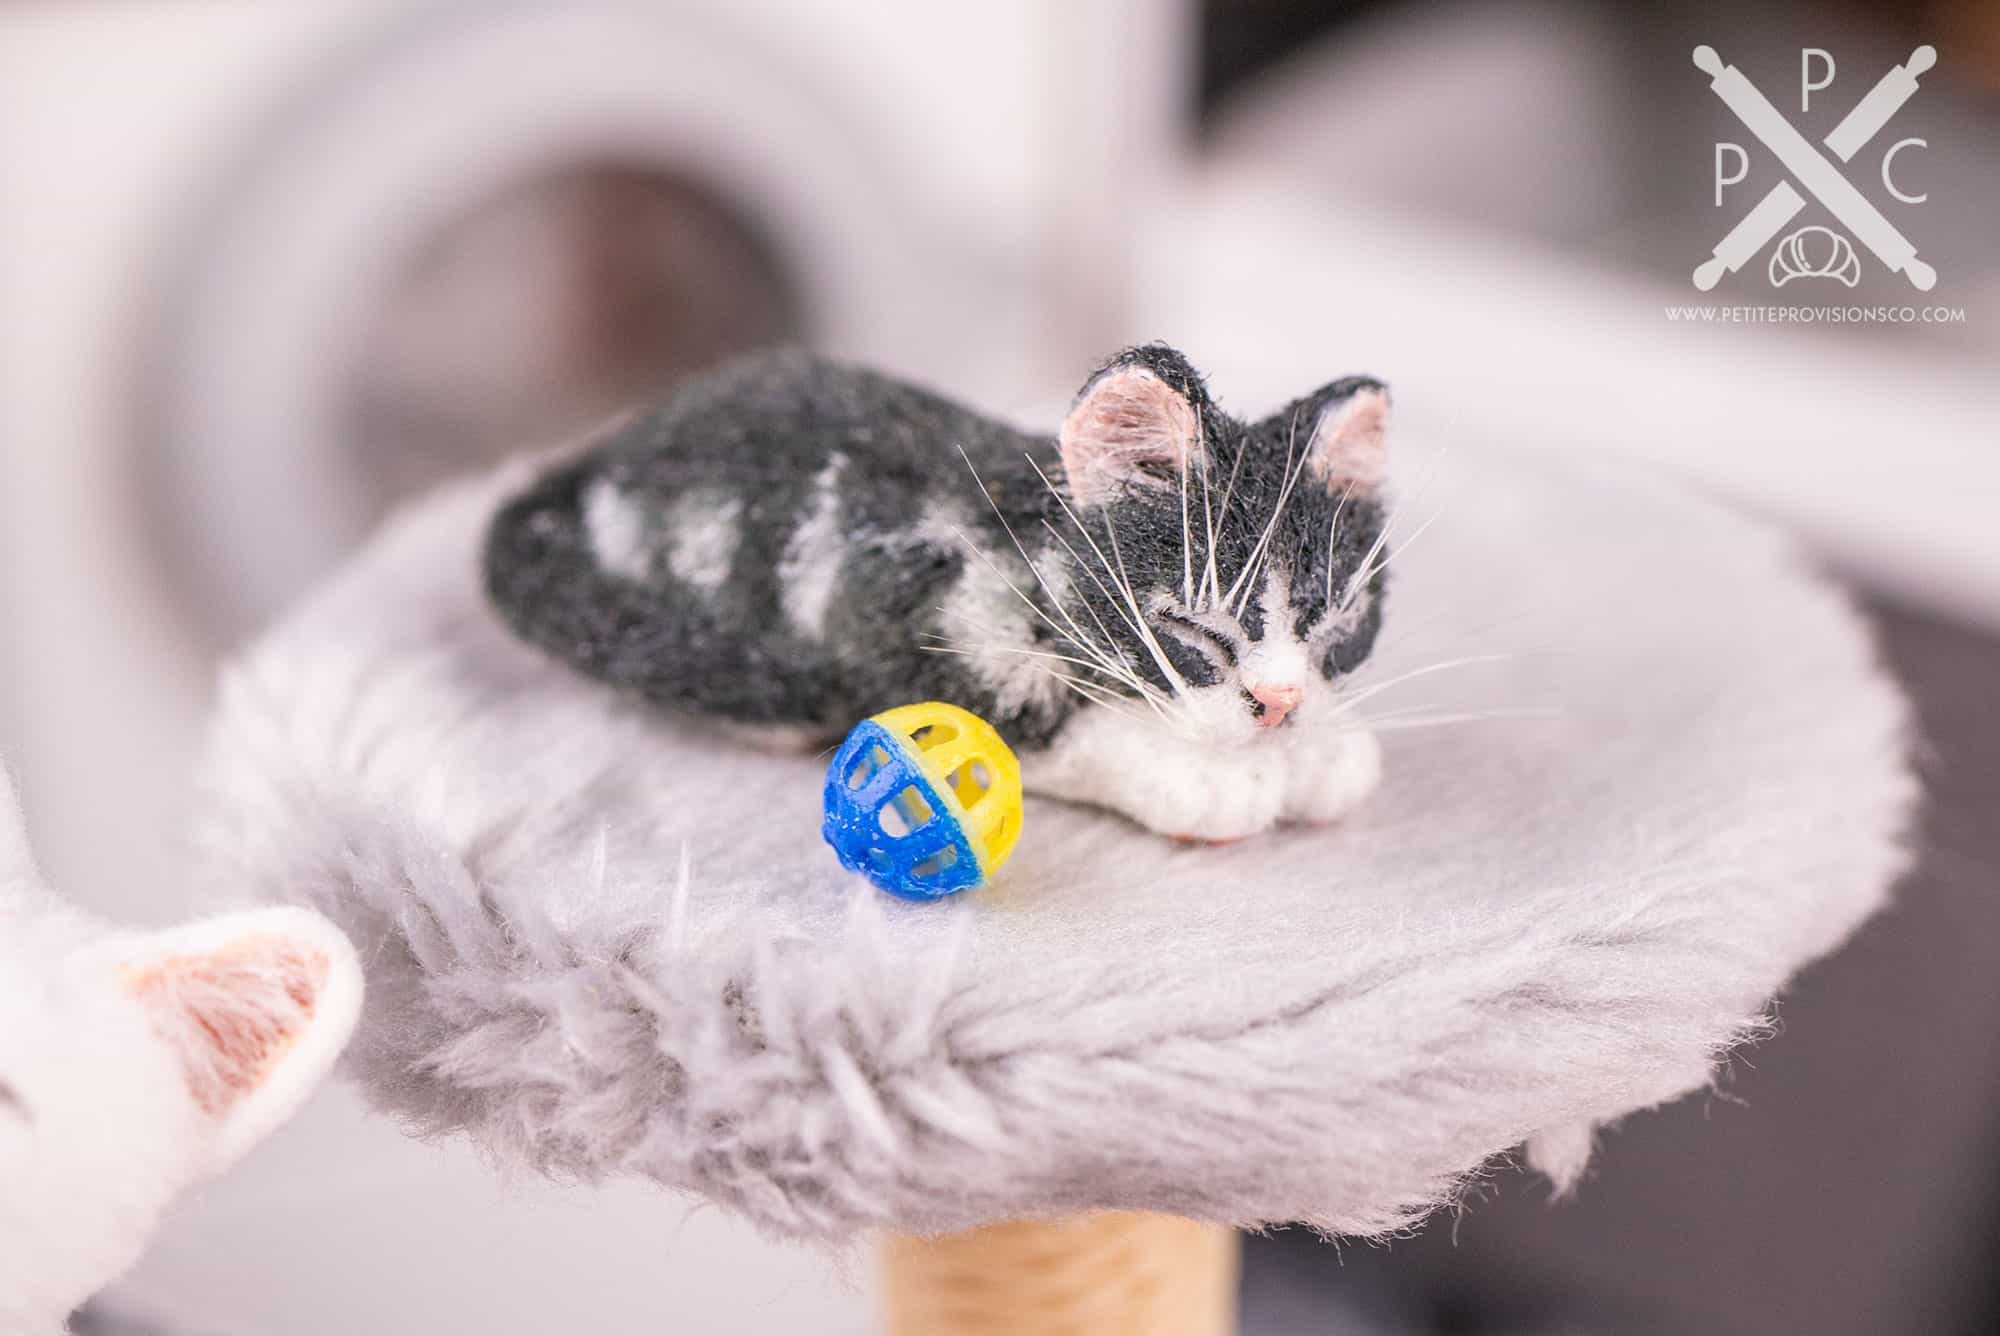 1/12 scale kitten sleeping next to a cat toy in a dollhouse miniature scene by Erika Pitera, The Petite Provisions Co.